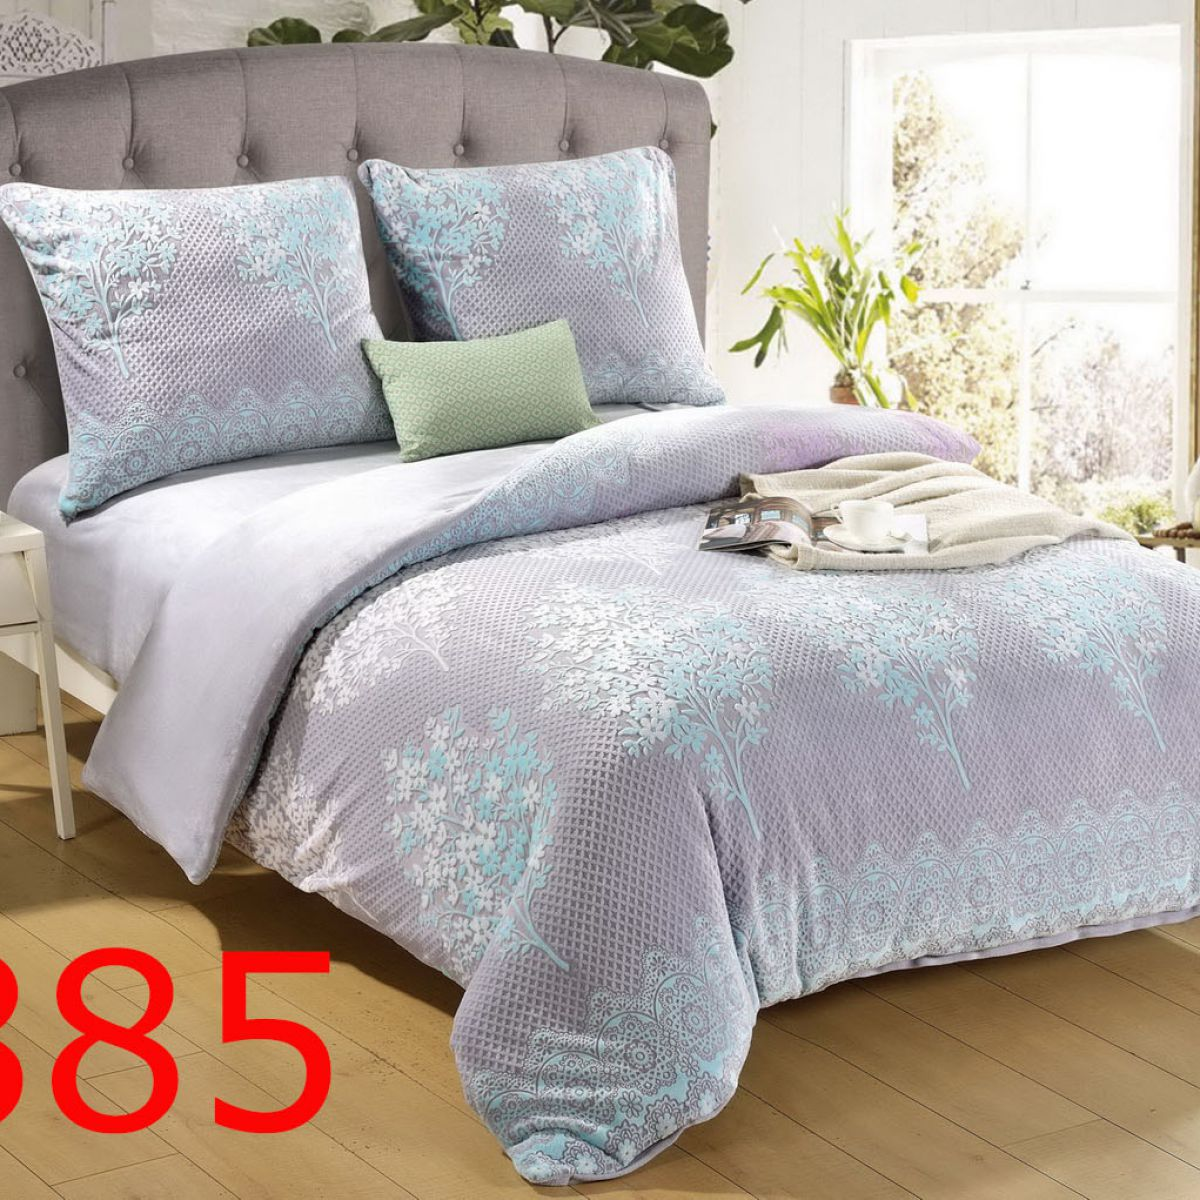 Plush Pressed Beddings - Cotton World - SHL-3807 - 160x200 cm - 3 pcs